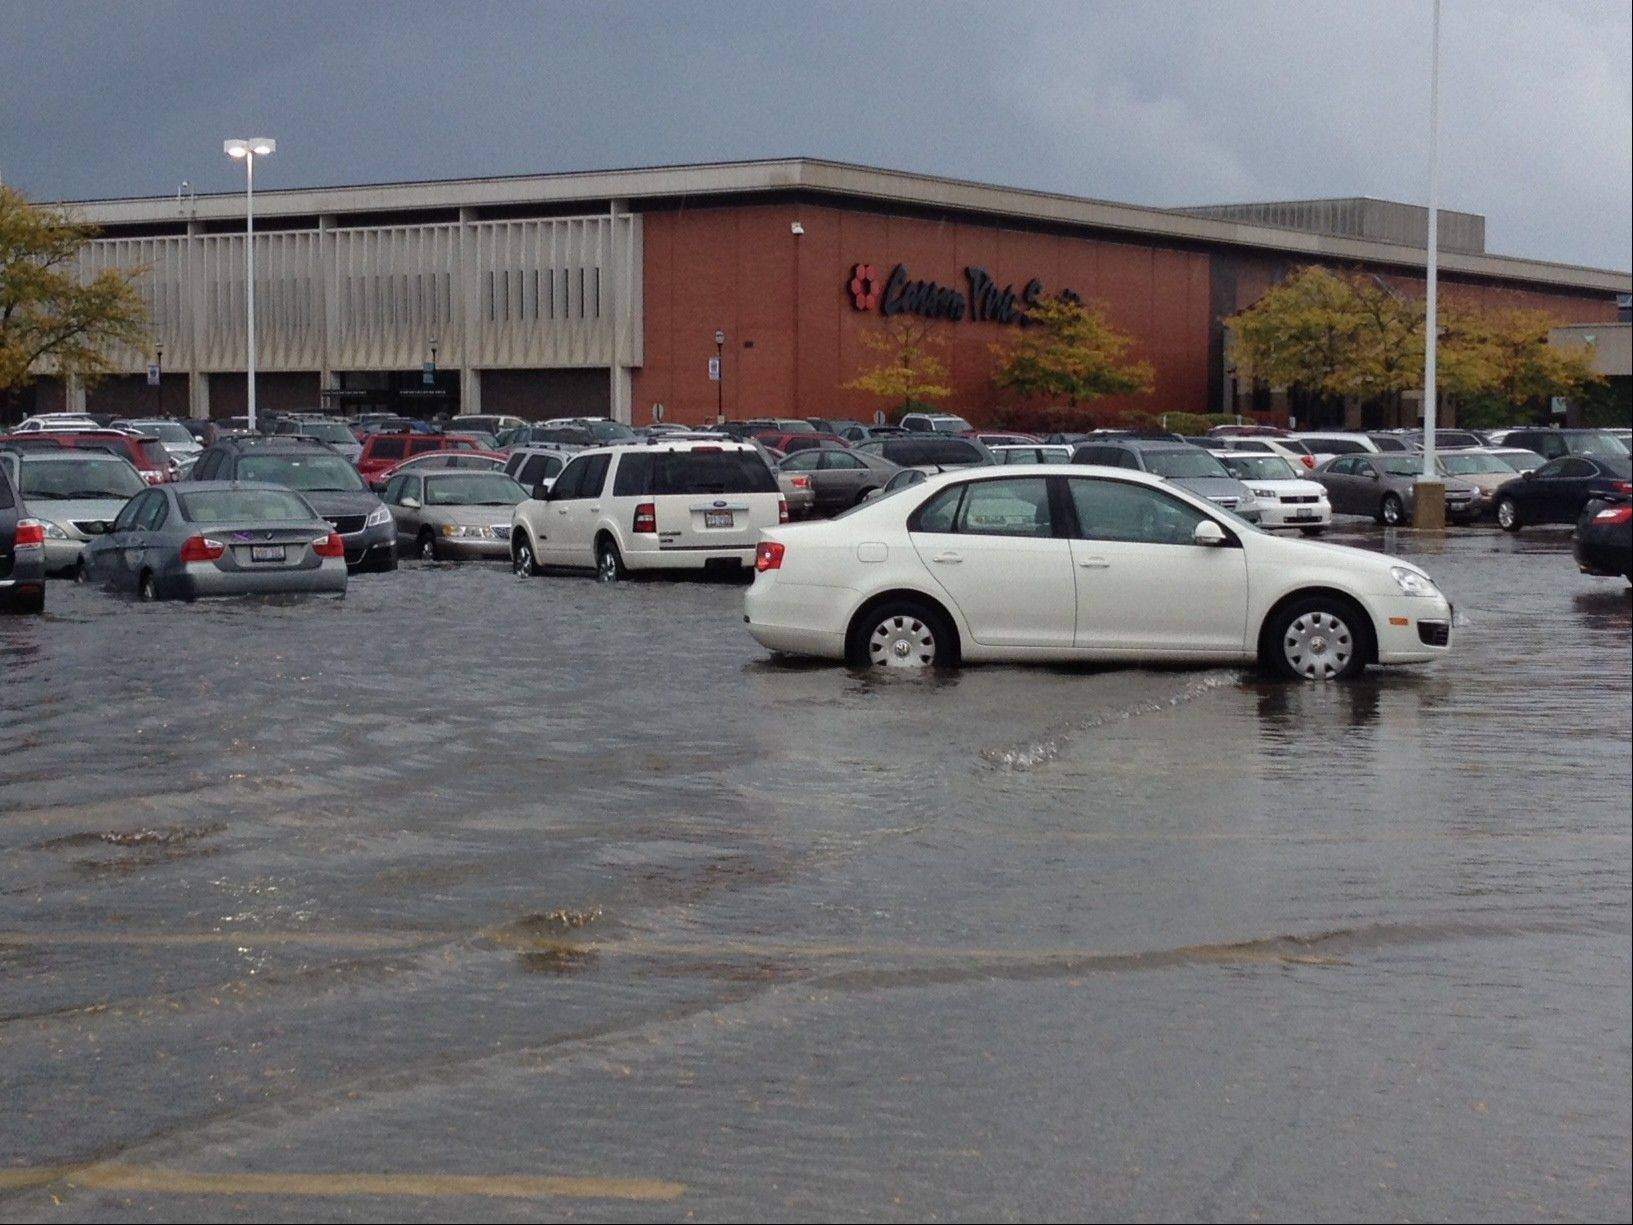 Water from Saturday's rain came up to the bottom of some of the cars in the parking lot at Yorktown Center in Lombard.